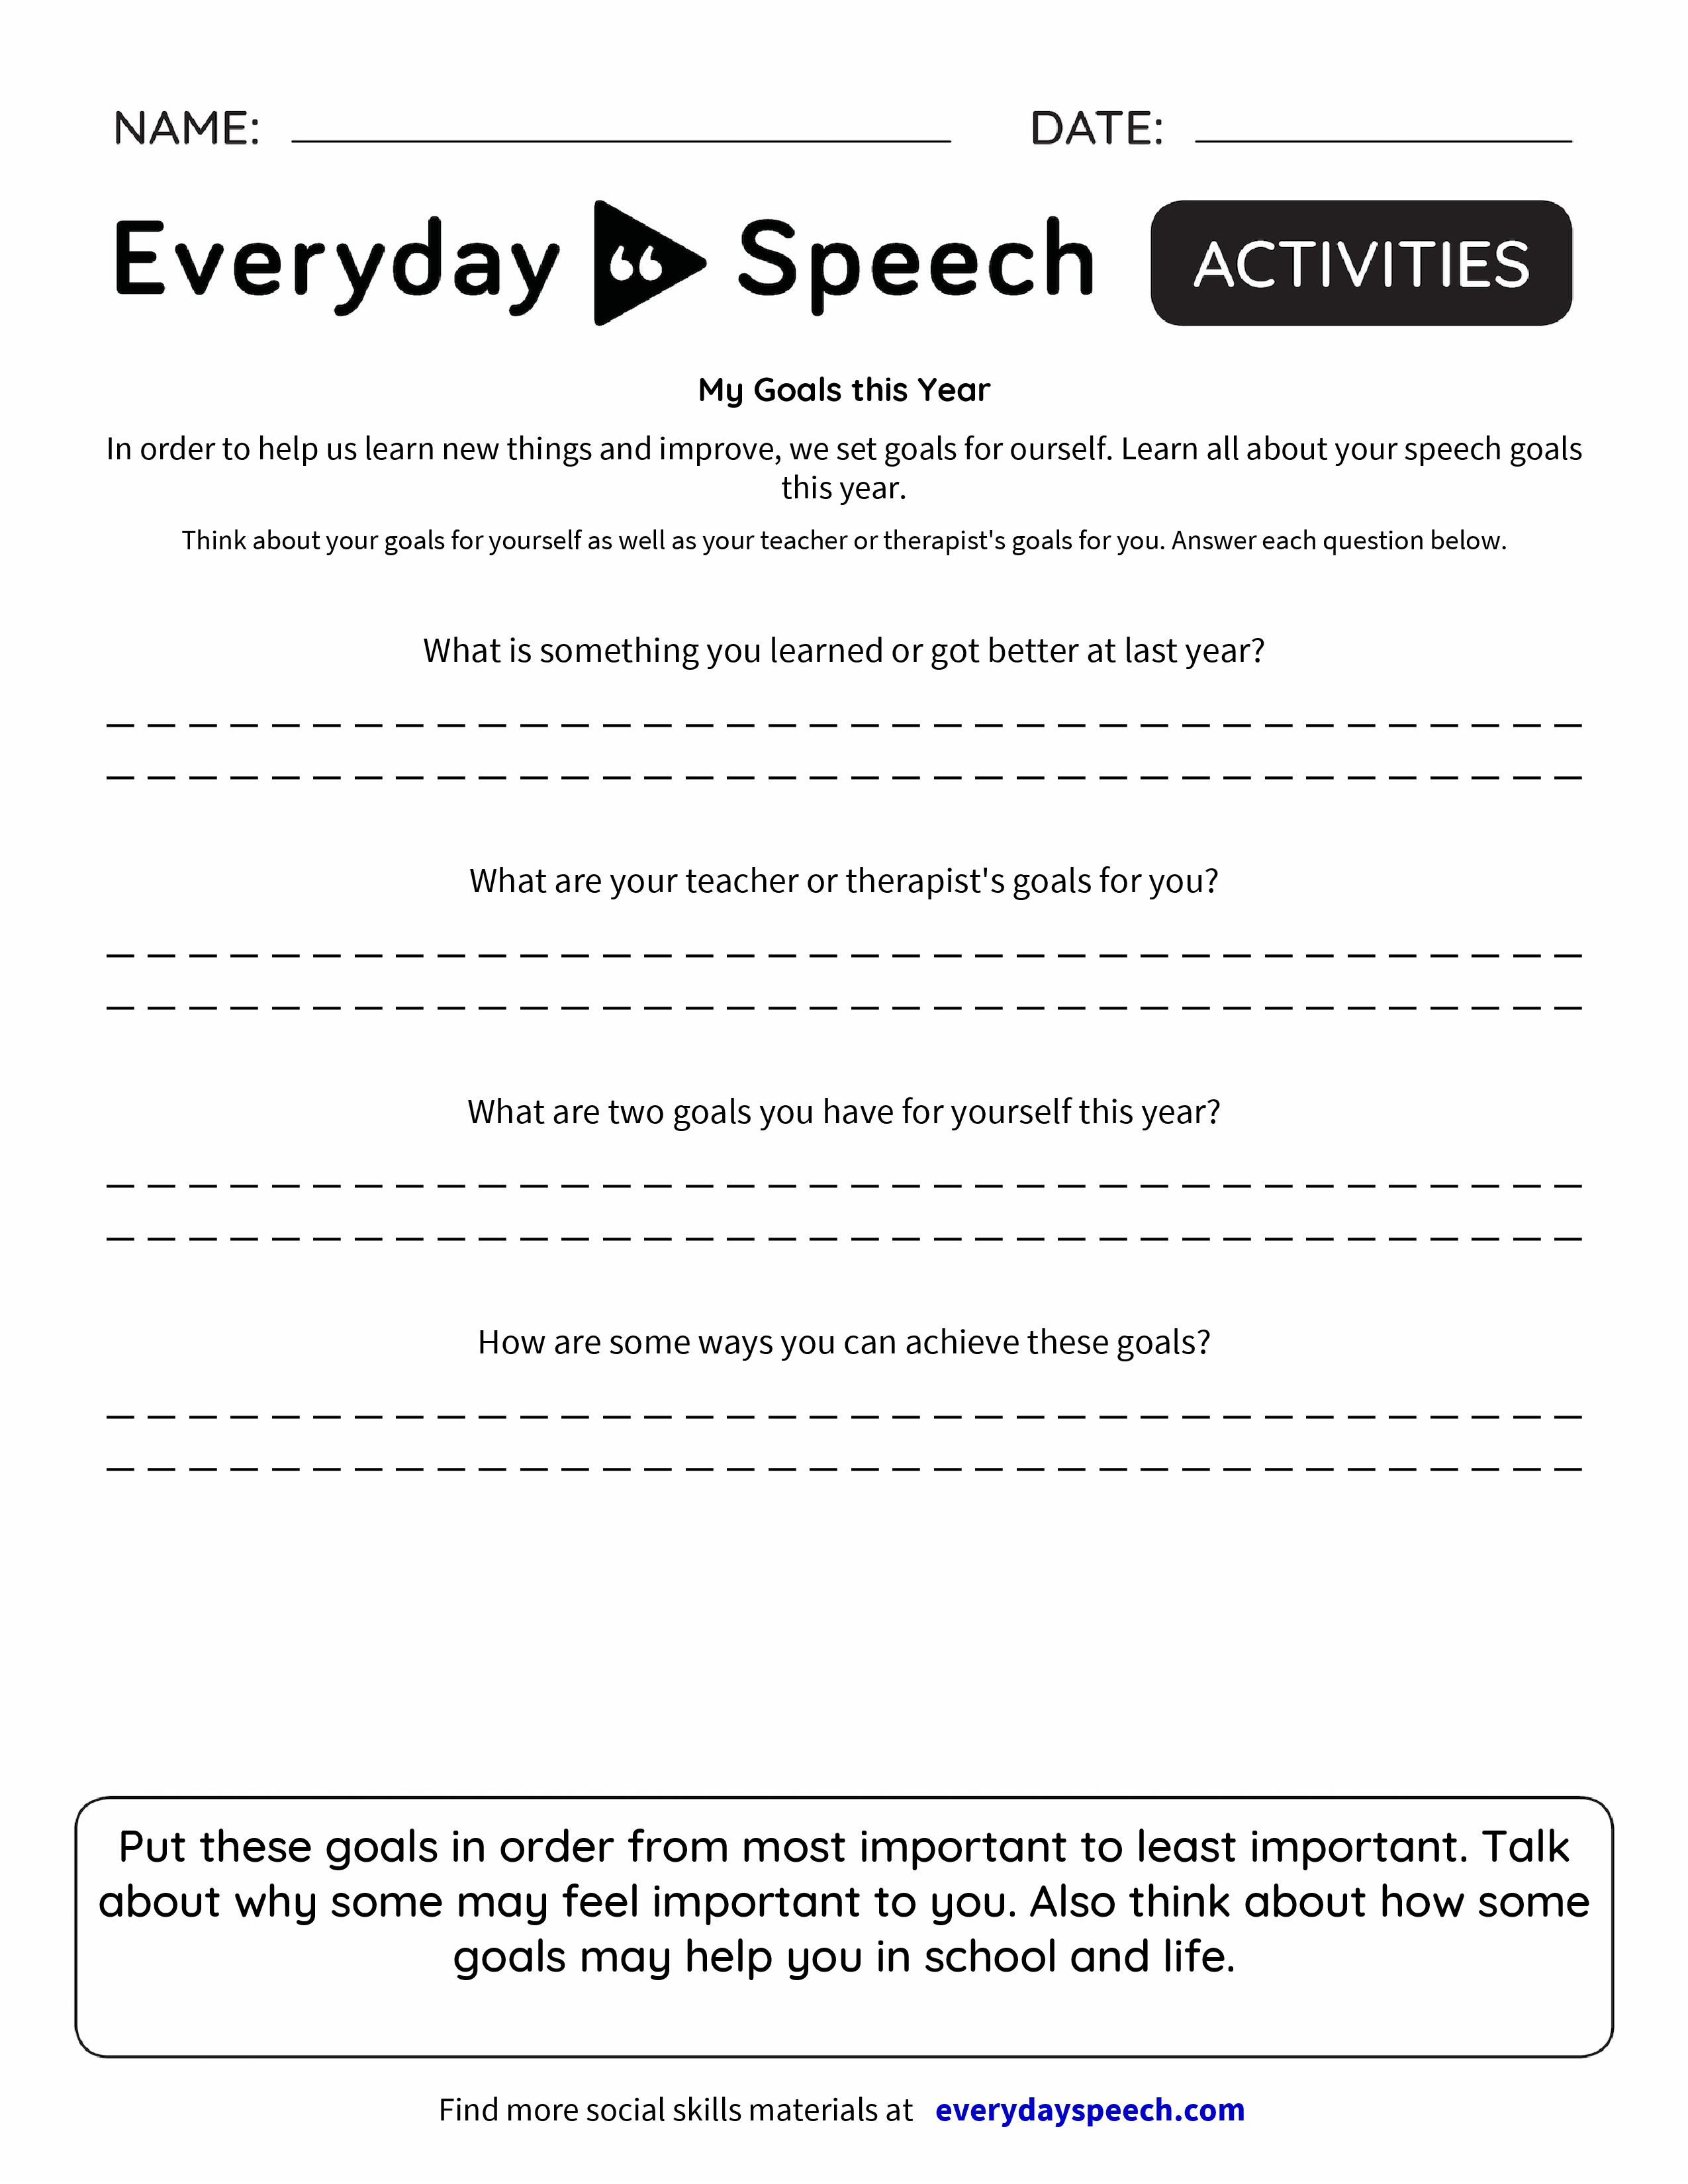 speech about goals